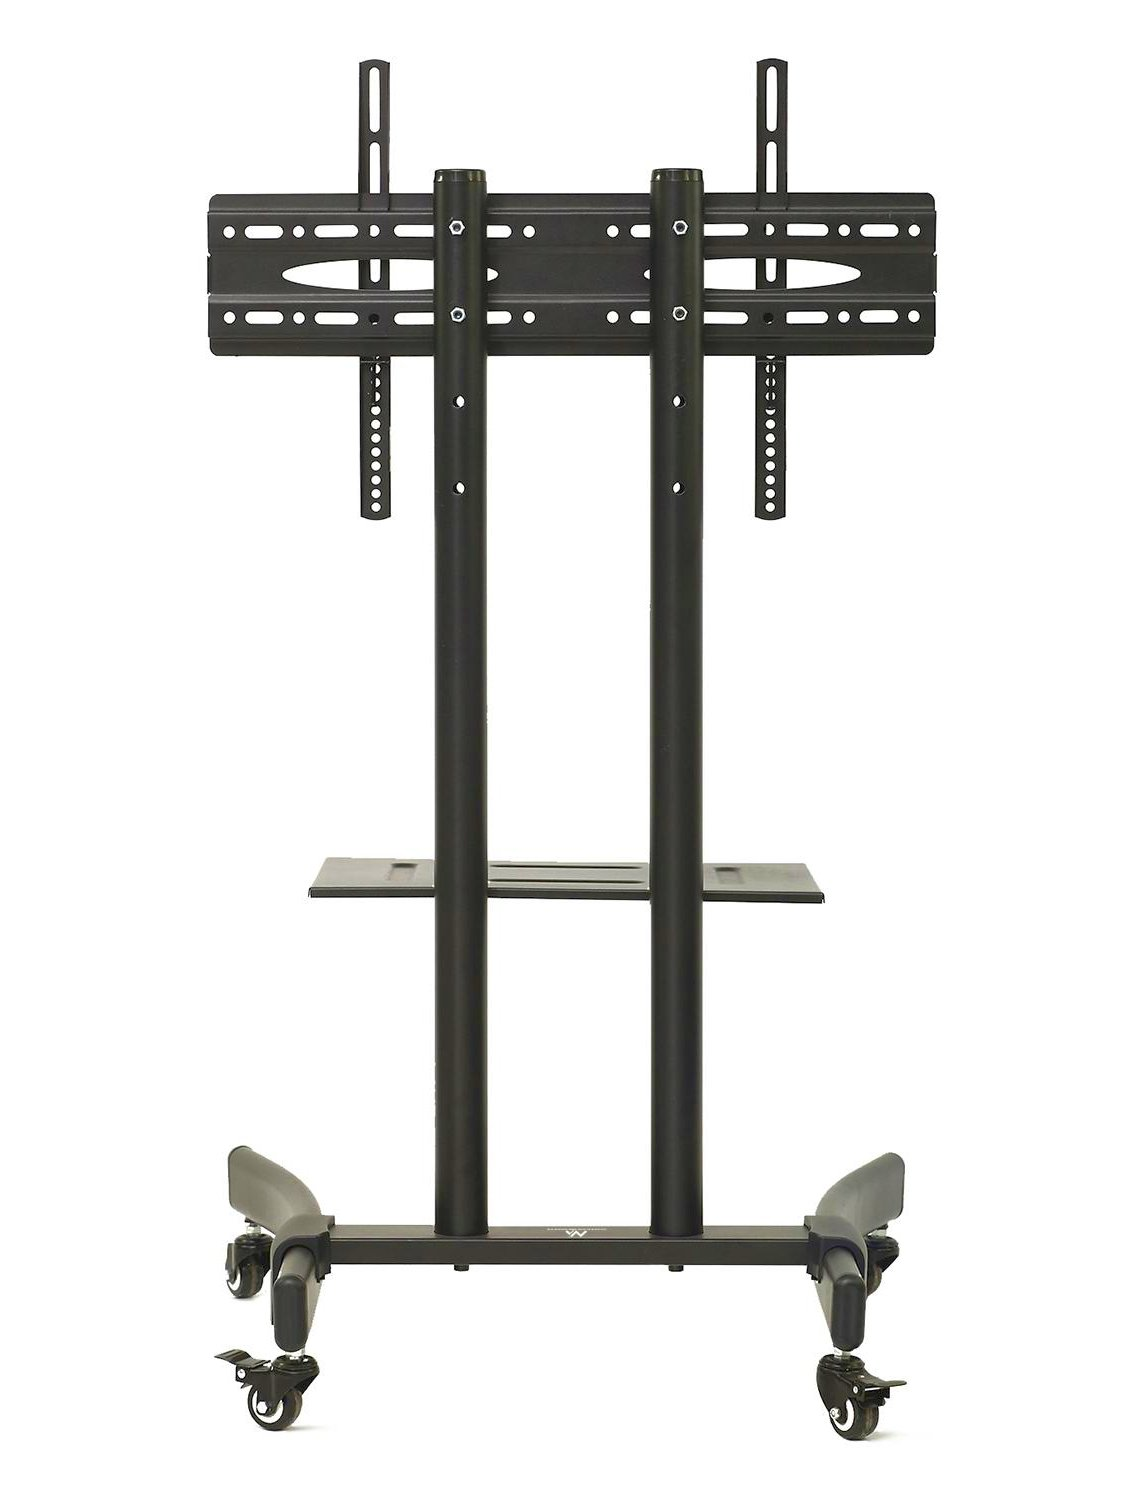 Maclean MC-739 (TV Trolley Stand) pilt 2